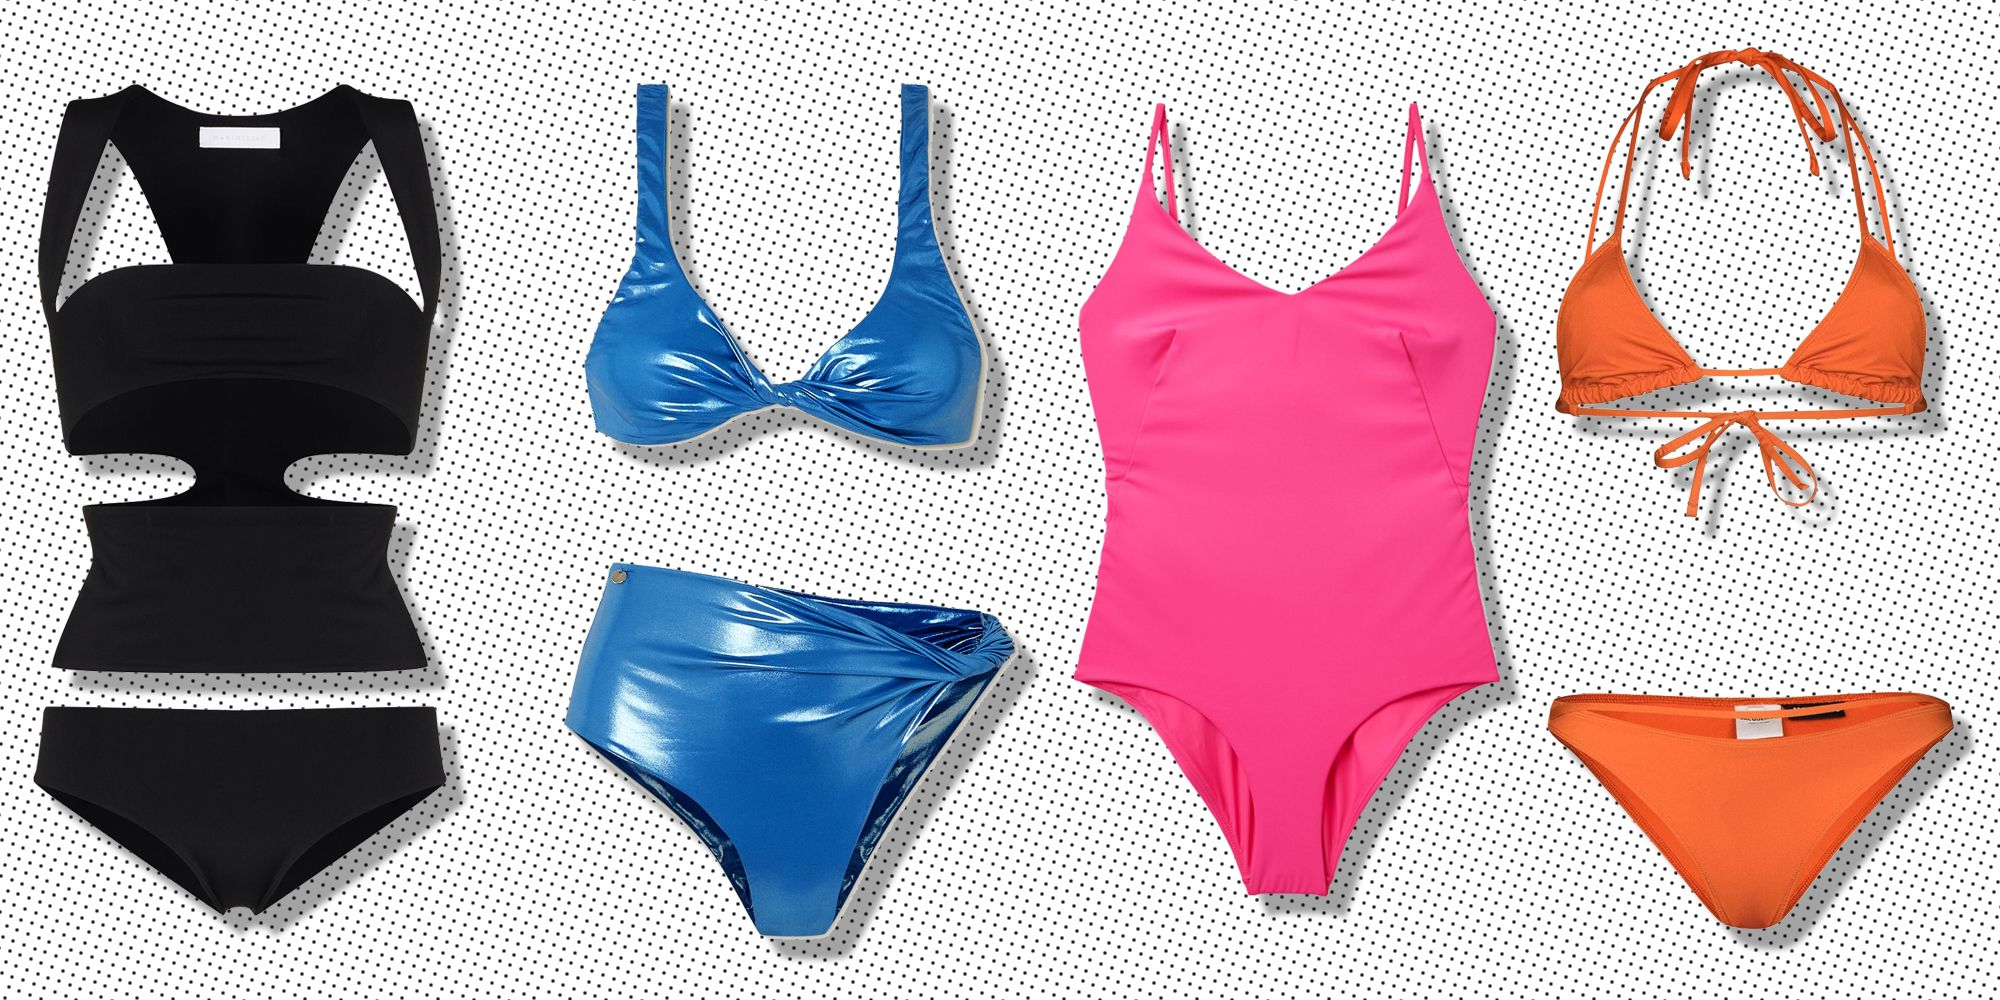 40 Of The Best Bikinis and Swimsuits You Need To Buy Now